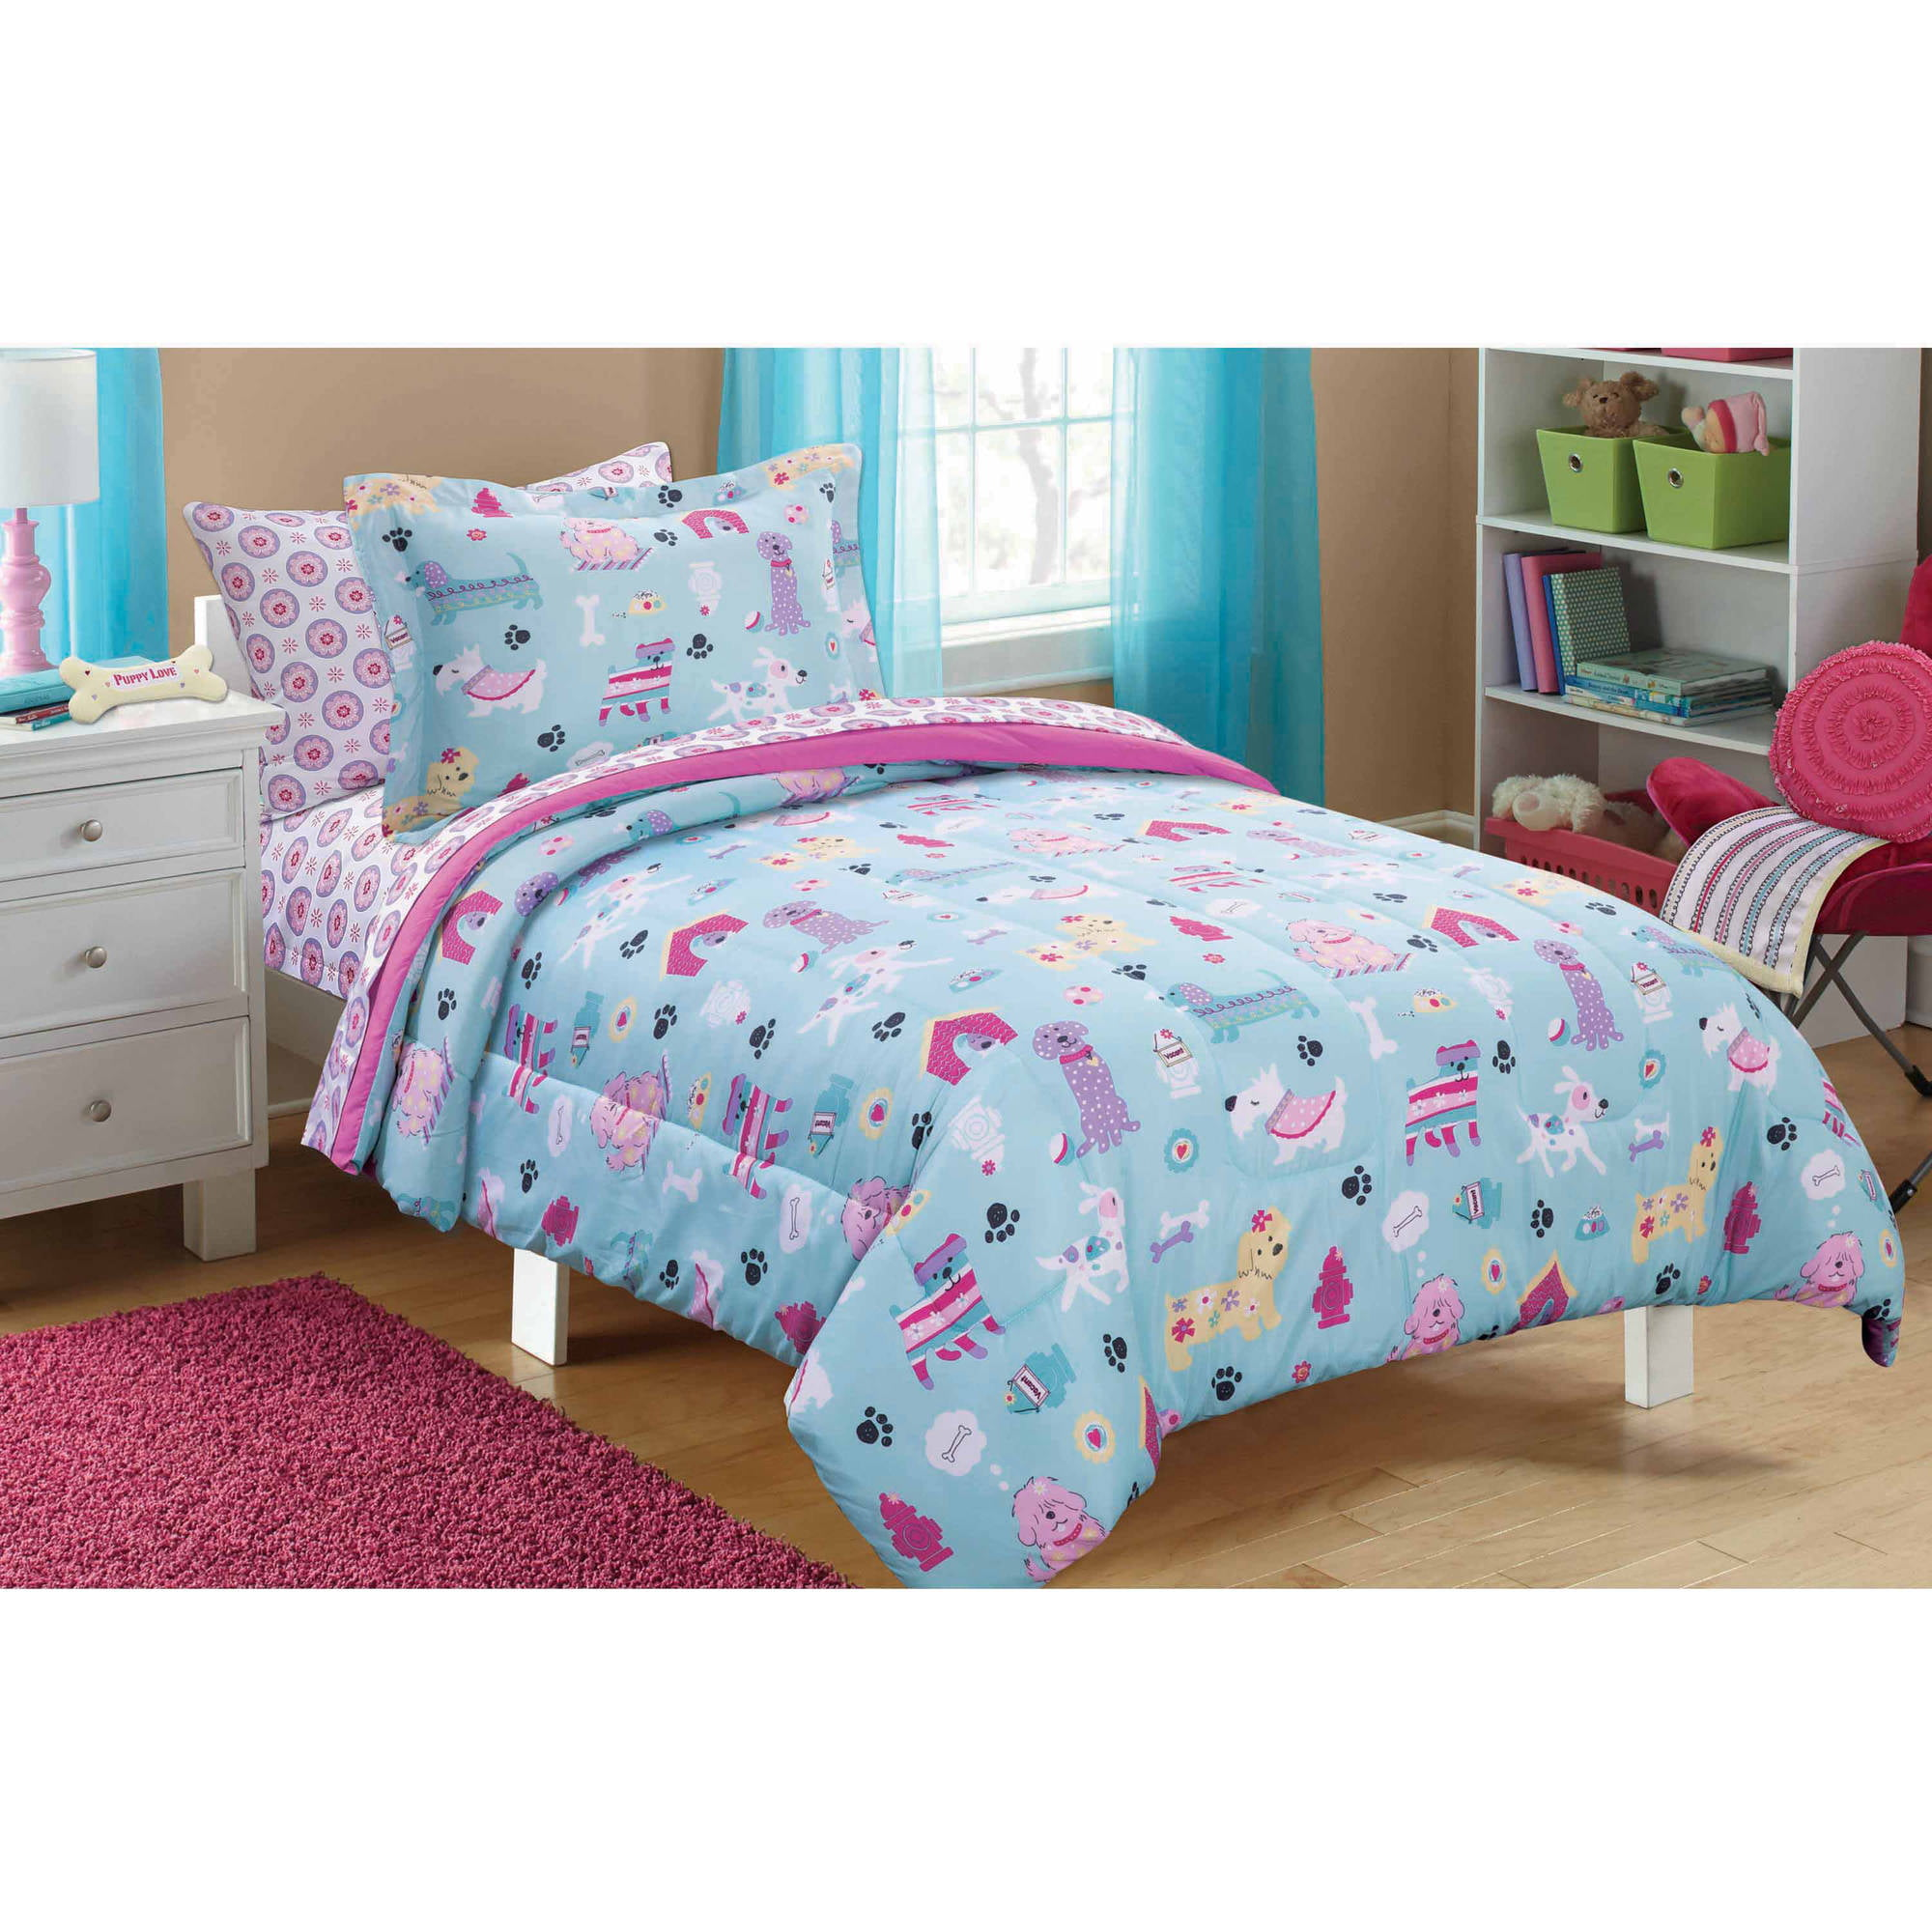 20a9399372aff Mainstays Kids Puppy Love Bed in a Bag Bedding Set - Walmart.com